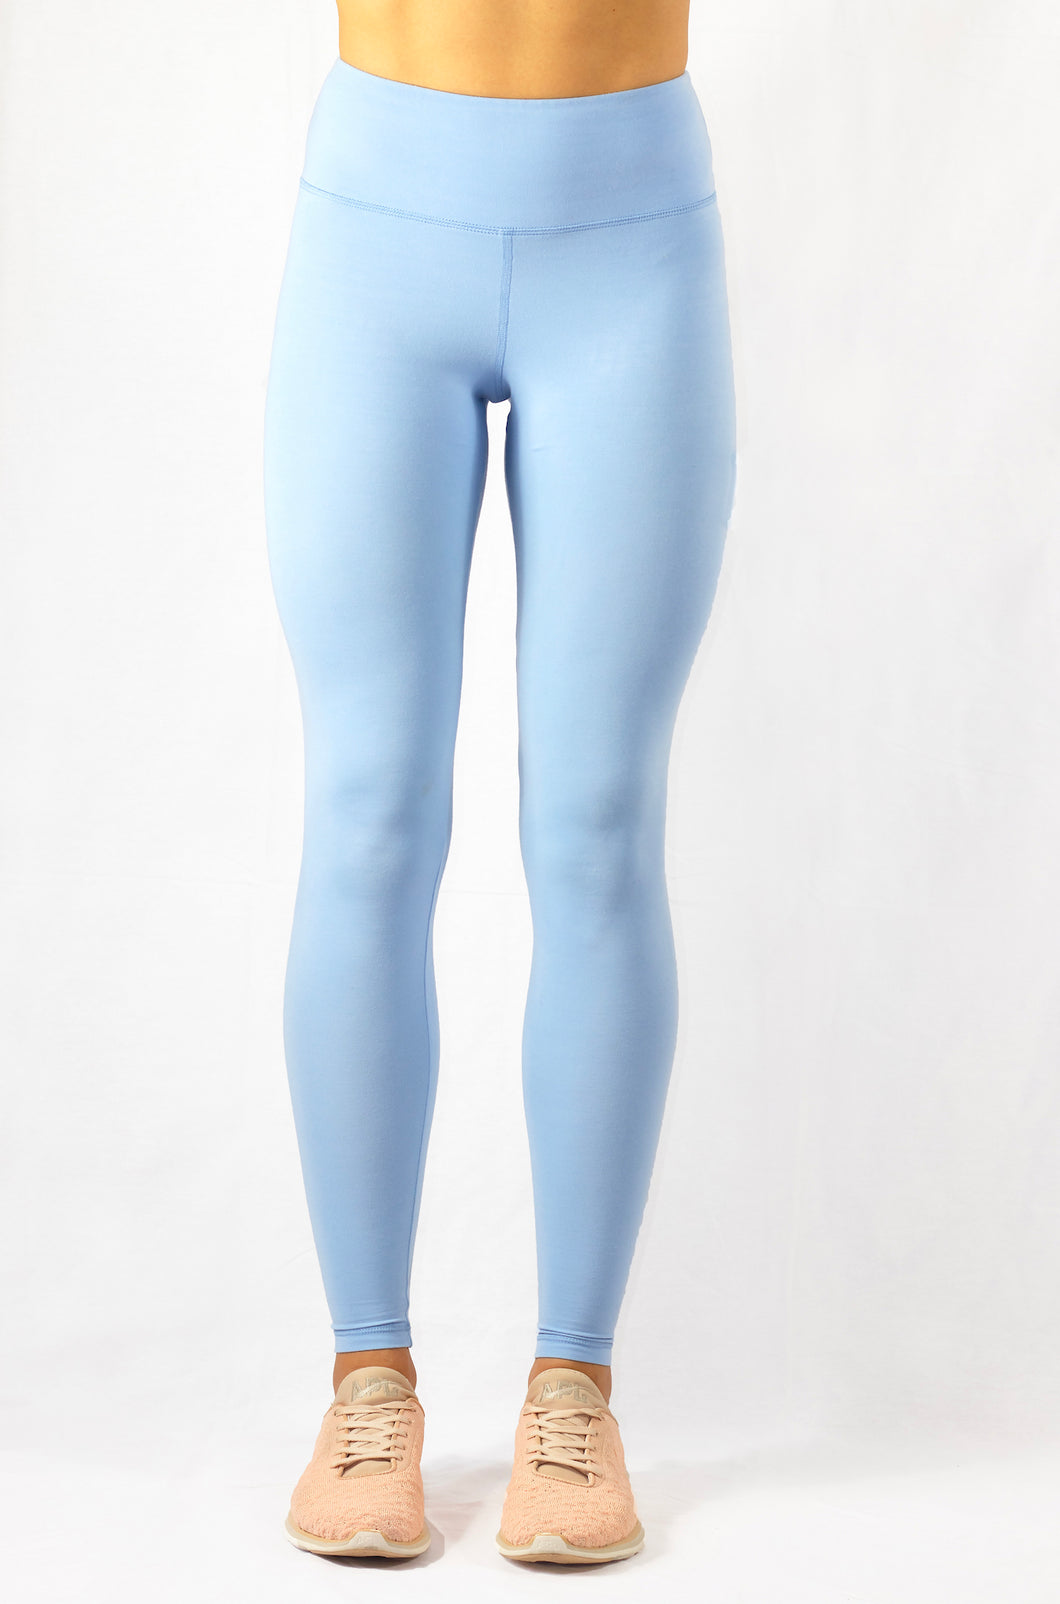 Go With The Flow Yoga Legging in Iceblue